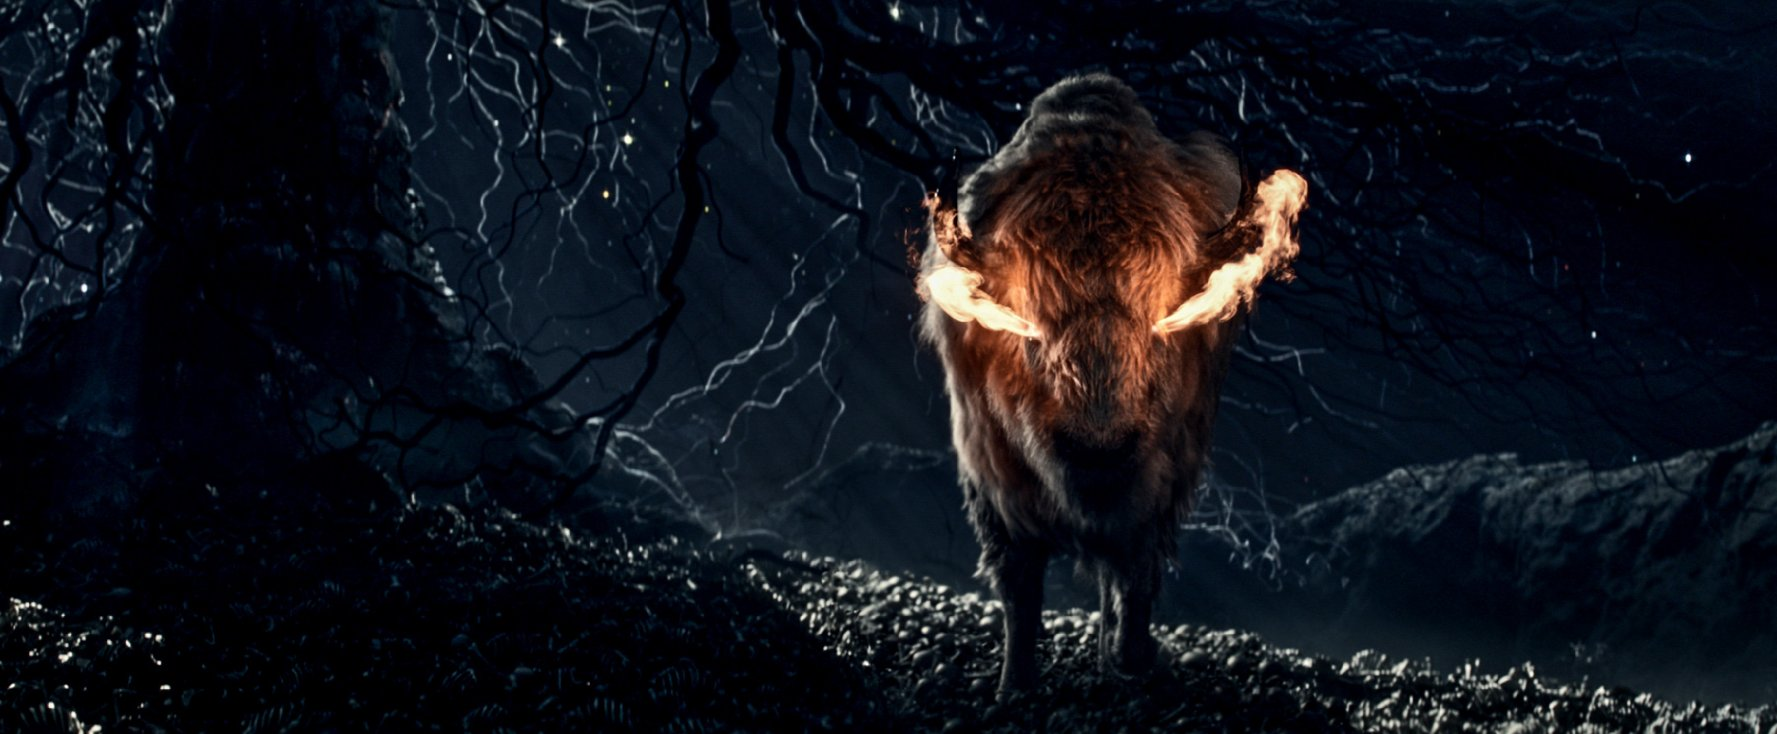 Why Neil Gaiman's American Gods is so iconic